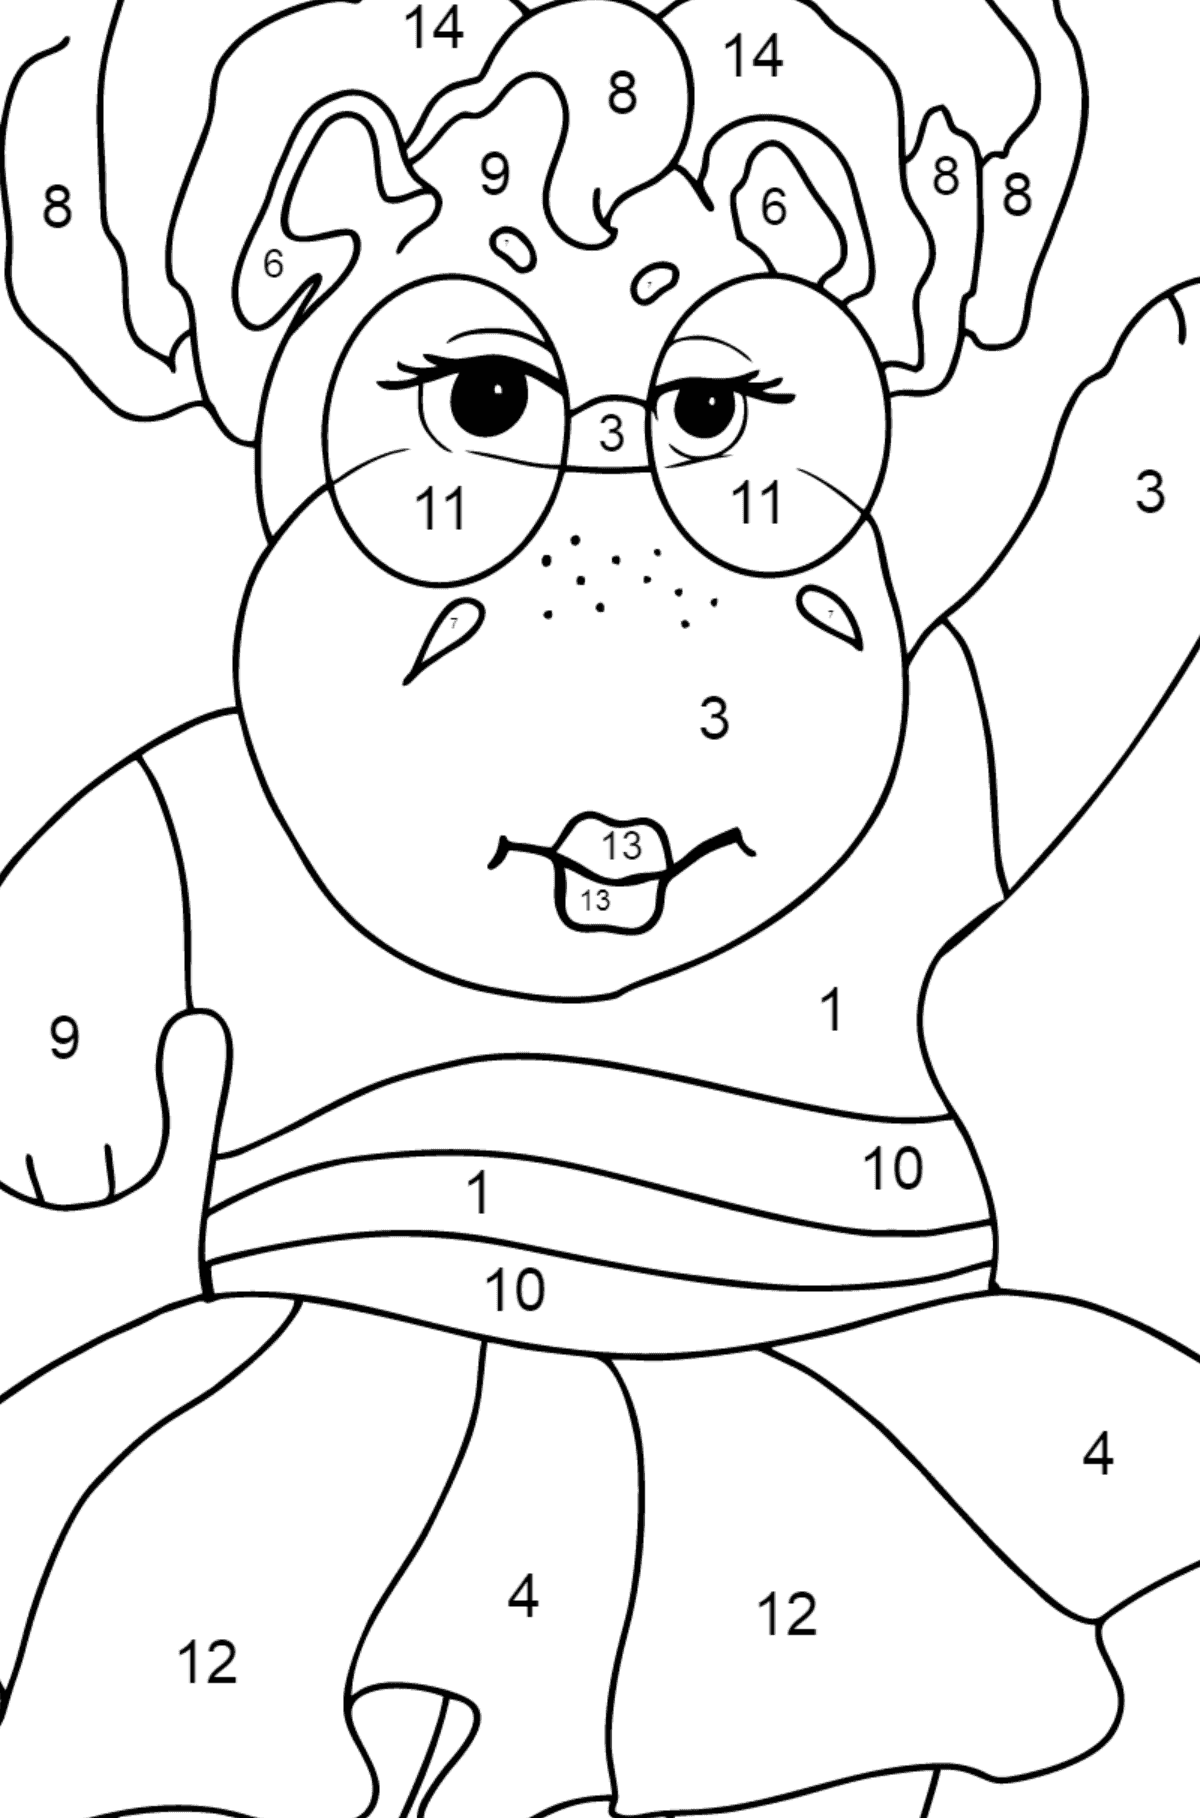 Coloring Page - A Hippo in Sunglasses for Children  - Color by Number